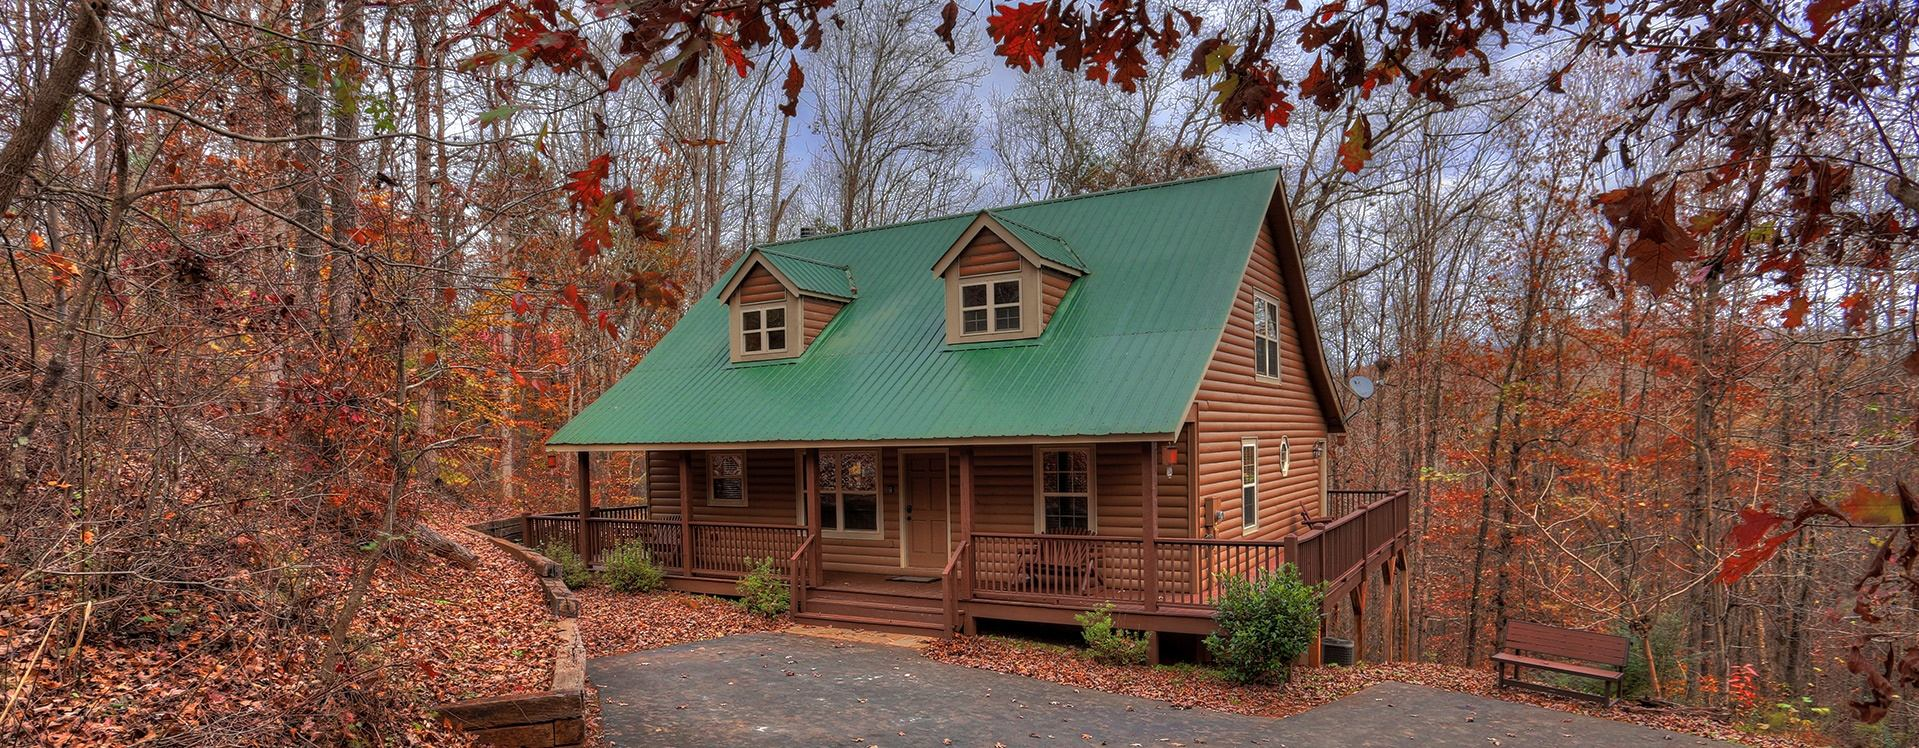 Inspiration-Cedar-Creek-Cabin-Rentals-Helen-Georgia-top-banner